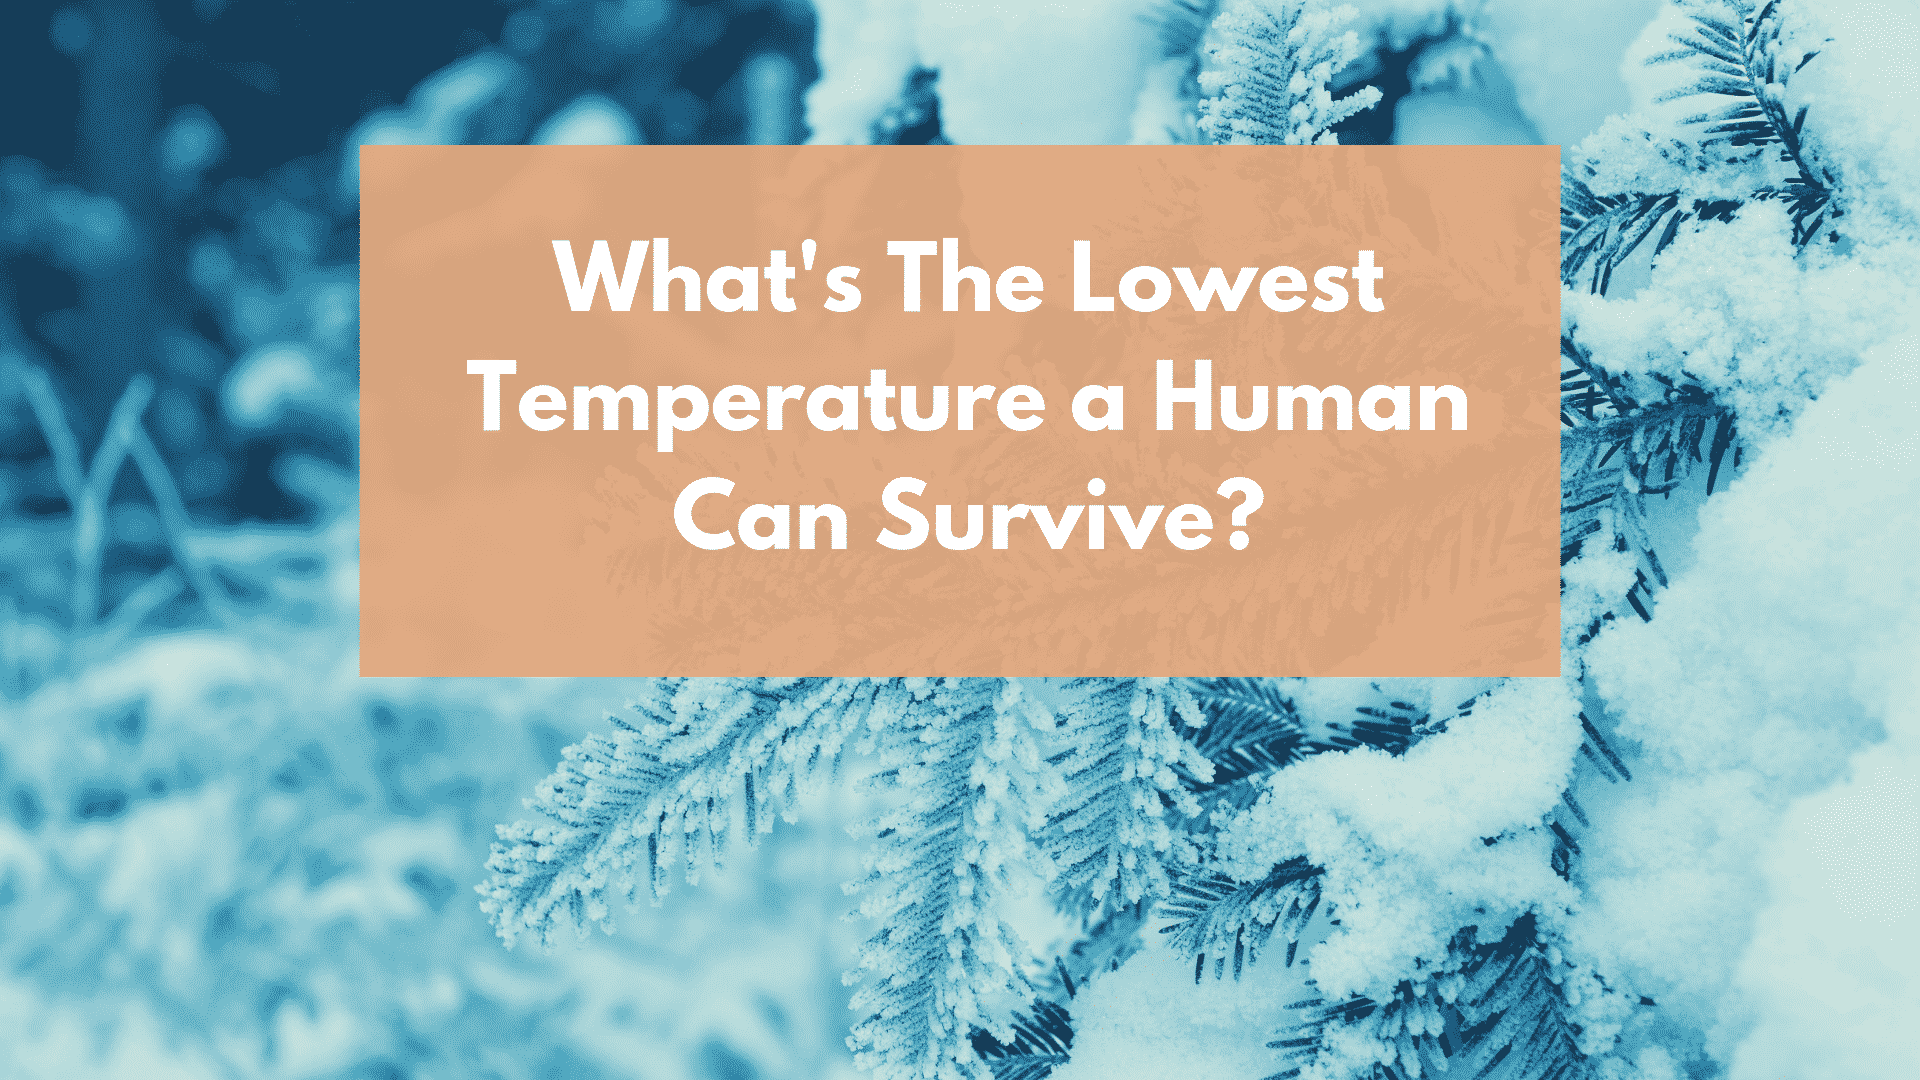 Lowest Temperature a Human Can Survive